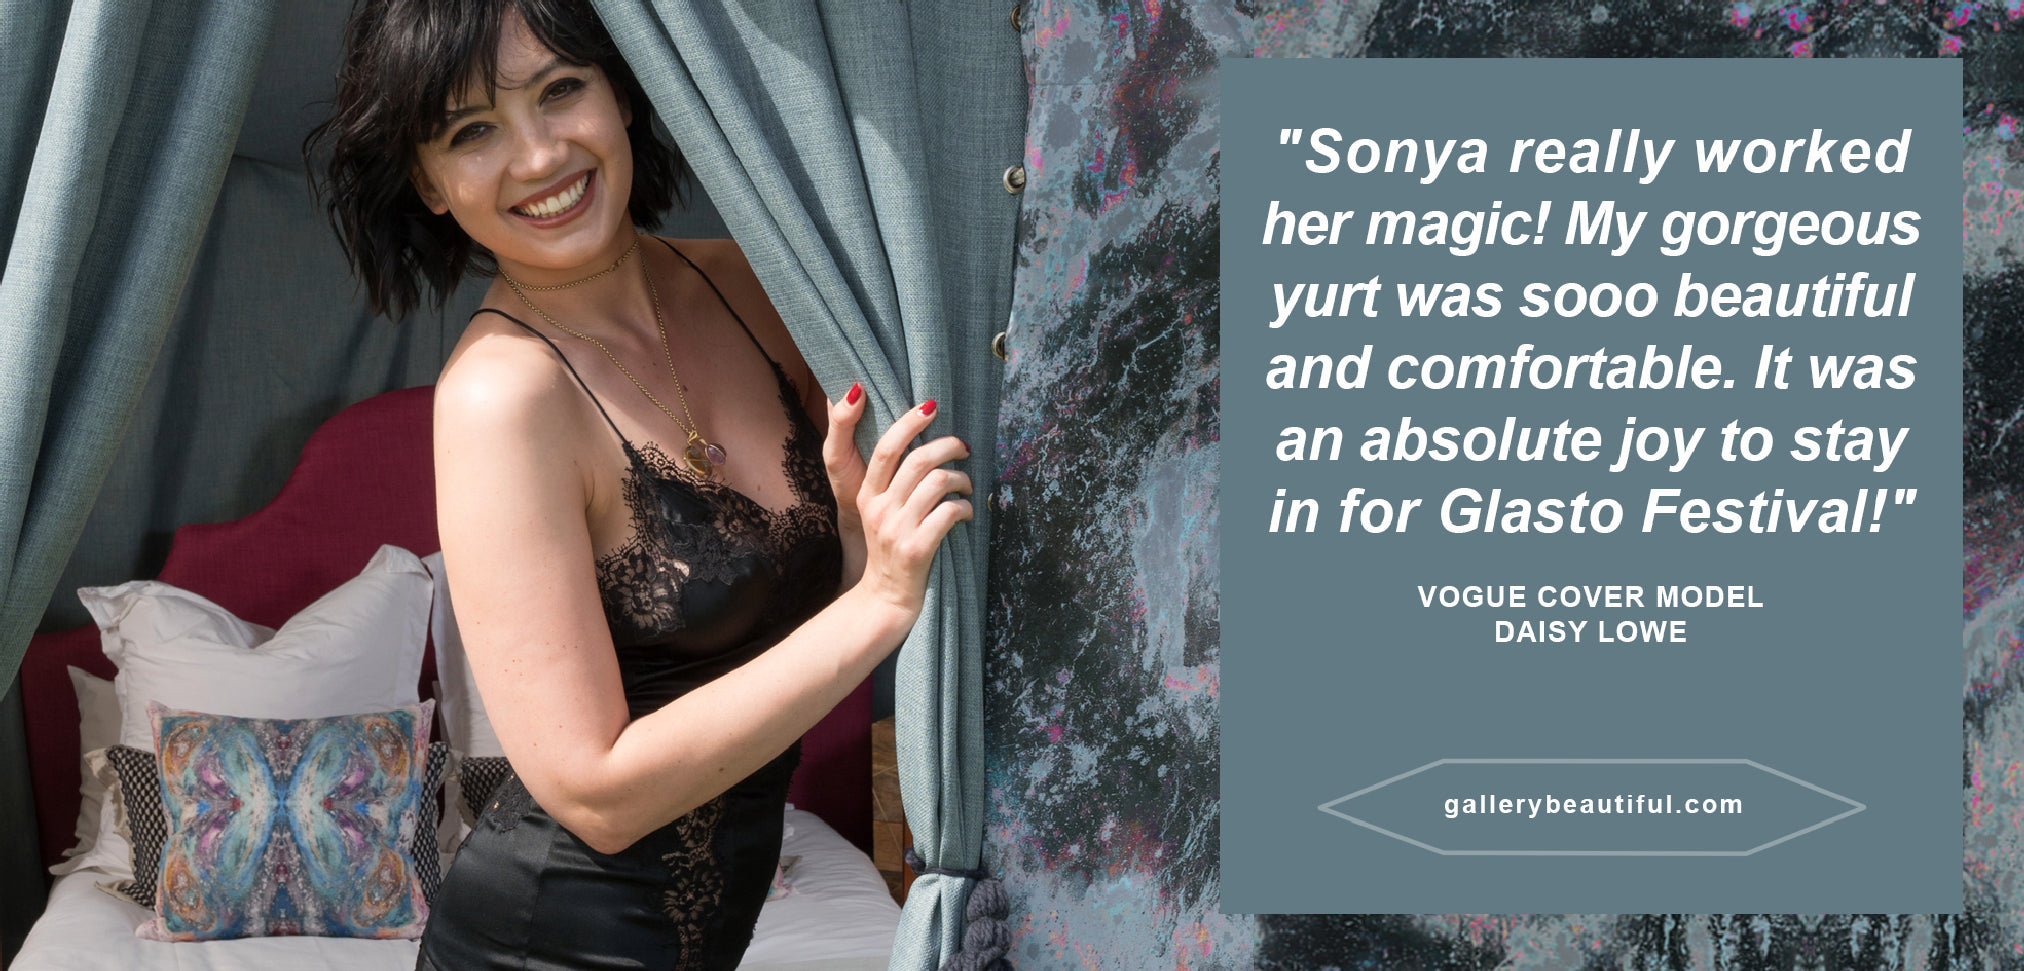 """Sonya Rothwell x Gallery Beautiful Testimonial –VOGUE COVER MODEL DAISY LOWE says; """"Sonya really worked her magic ! My gorgeous yurt was soooo beautiful and comfortable. It was an absolute joy to stay in for Glasto Festival !"""" glamping, tent, glastonbury, music festival, interior design, home decor"""